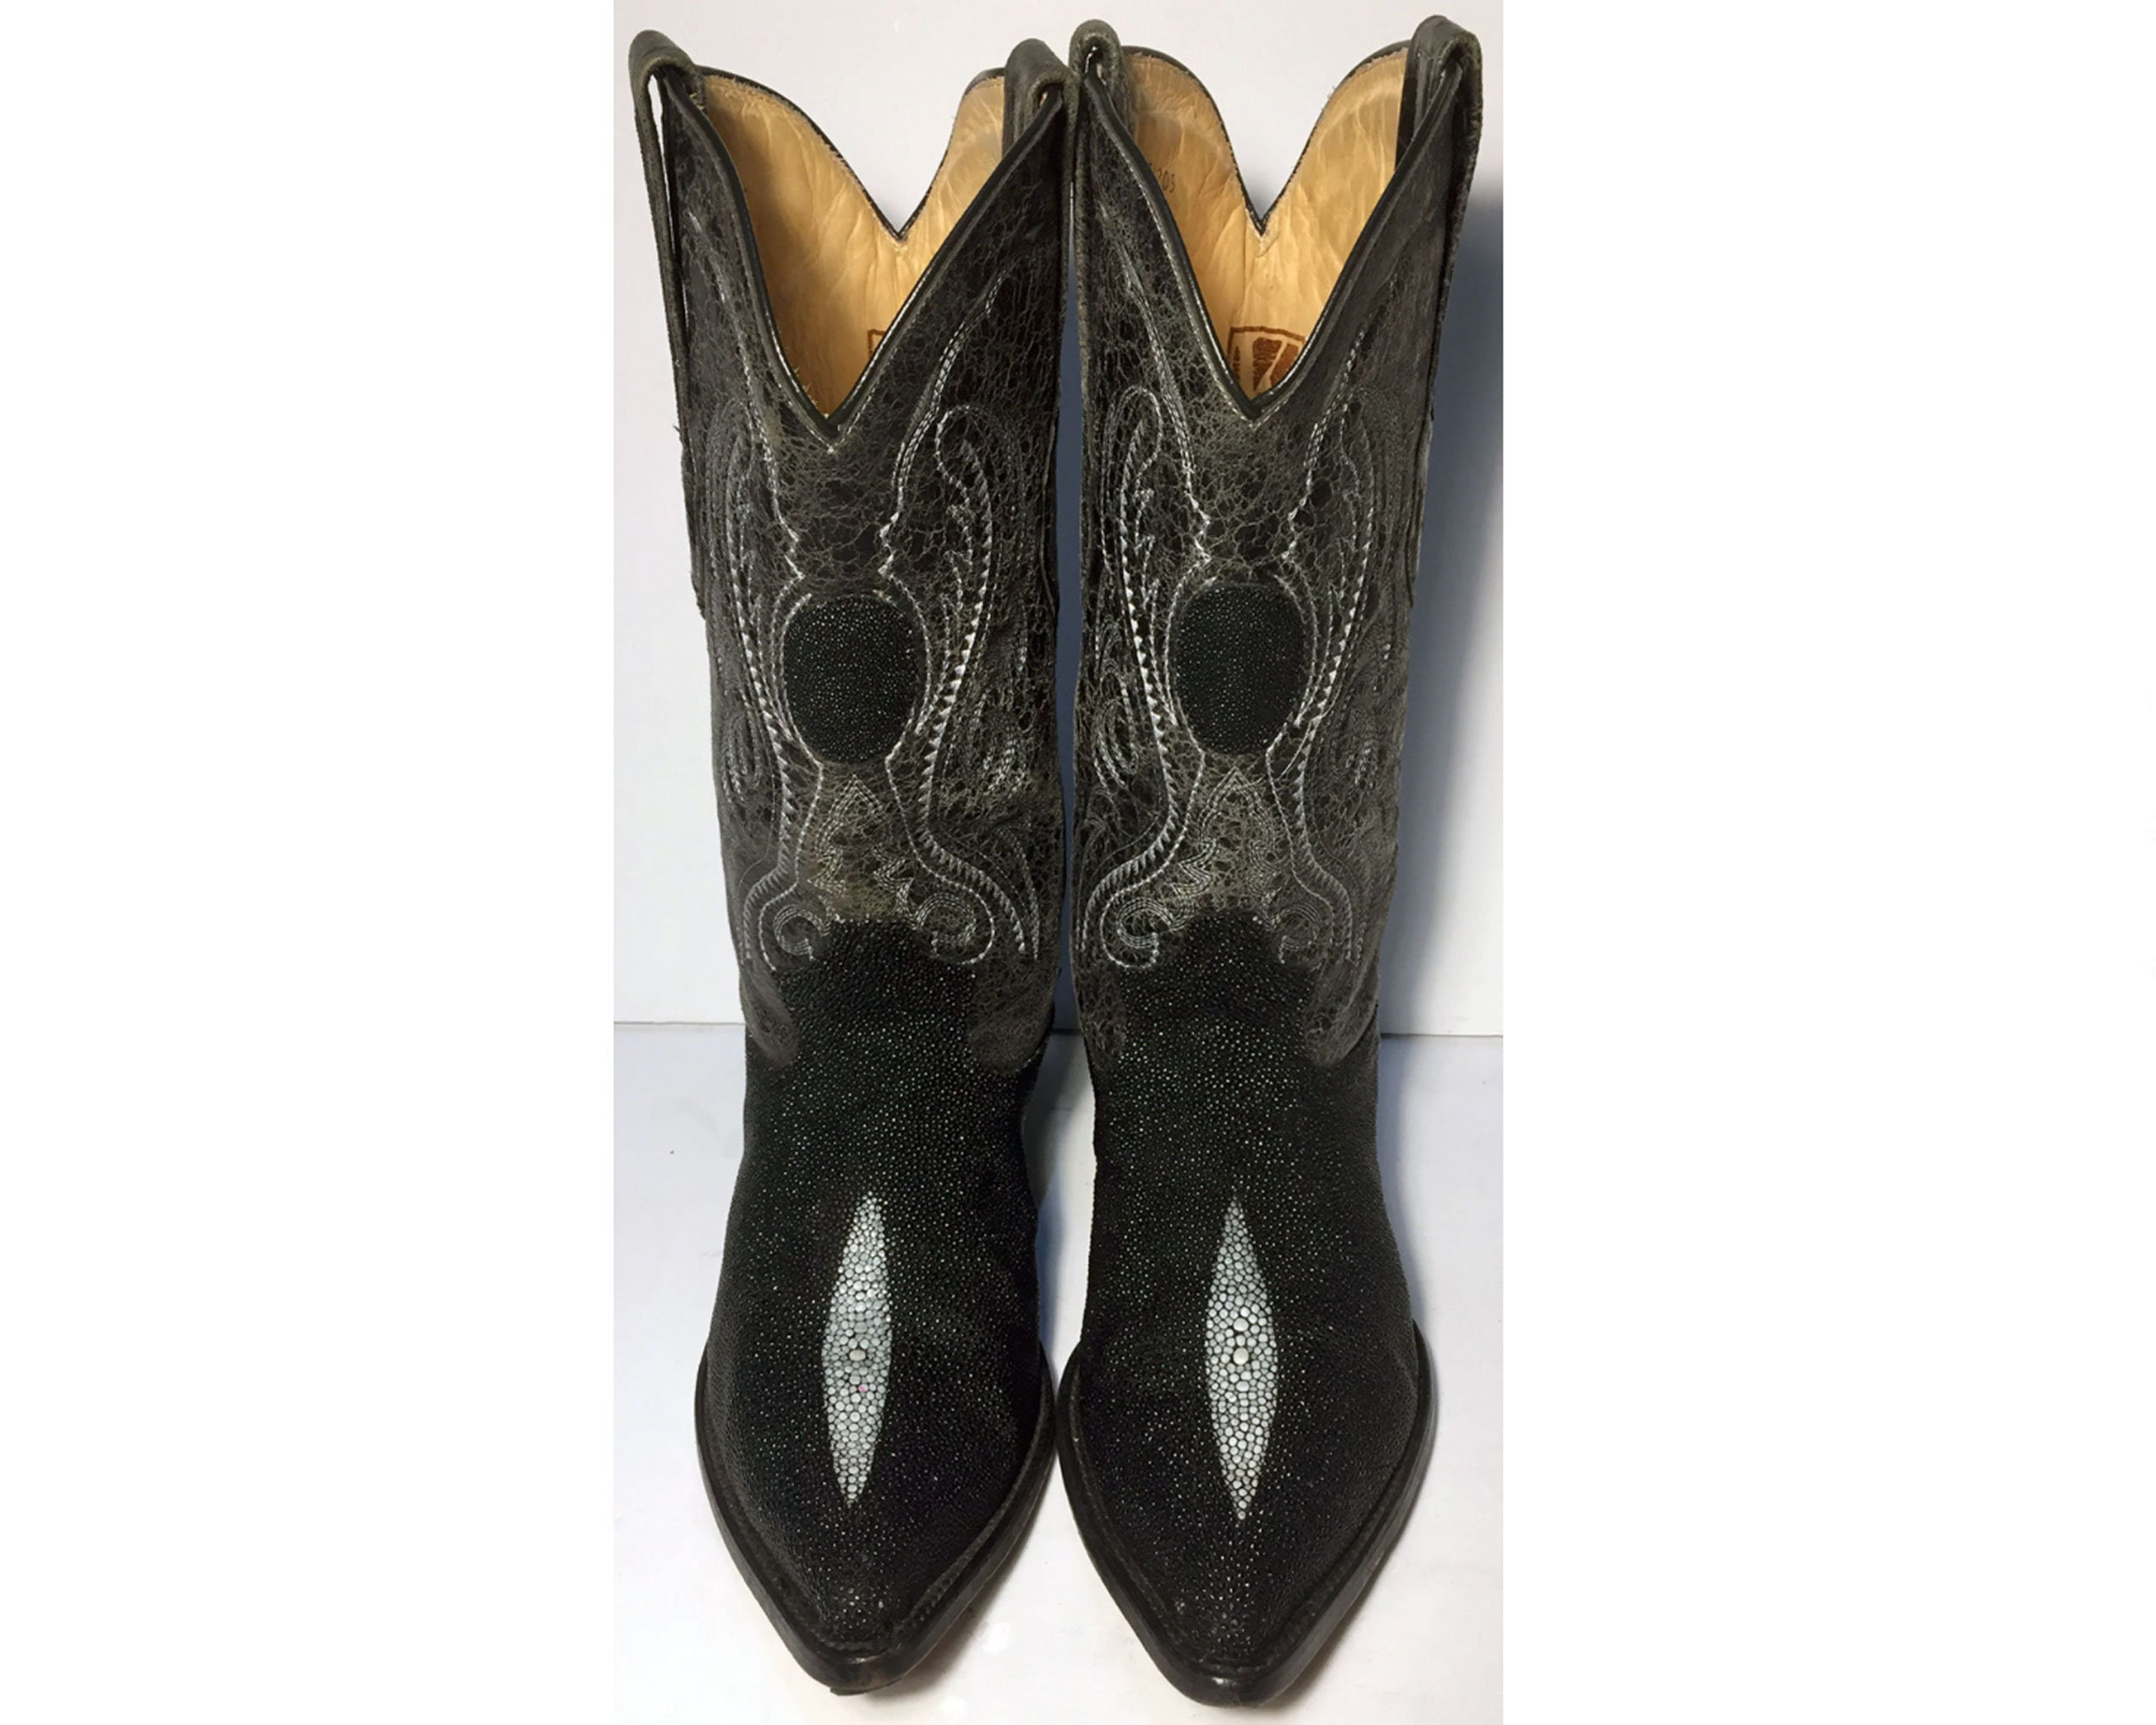 f0cb8840bbb 10 US || 43 Euro || 9.5 UK || Black Stingray Cowboy Western Boots Men ||  Size 10 EE (Wide Width) Exotic Leather Country Vintage Boots